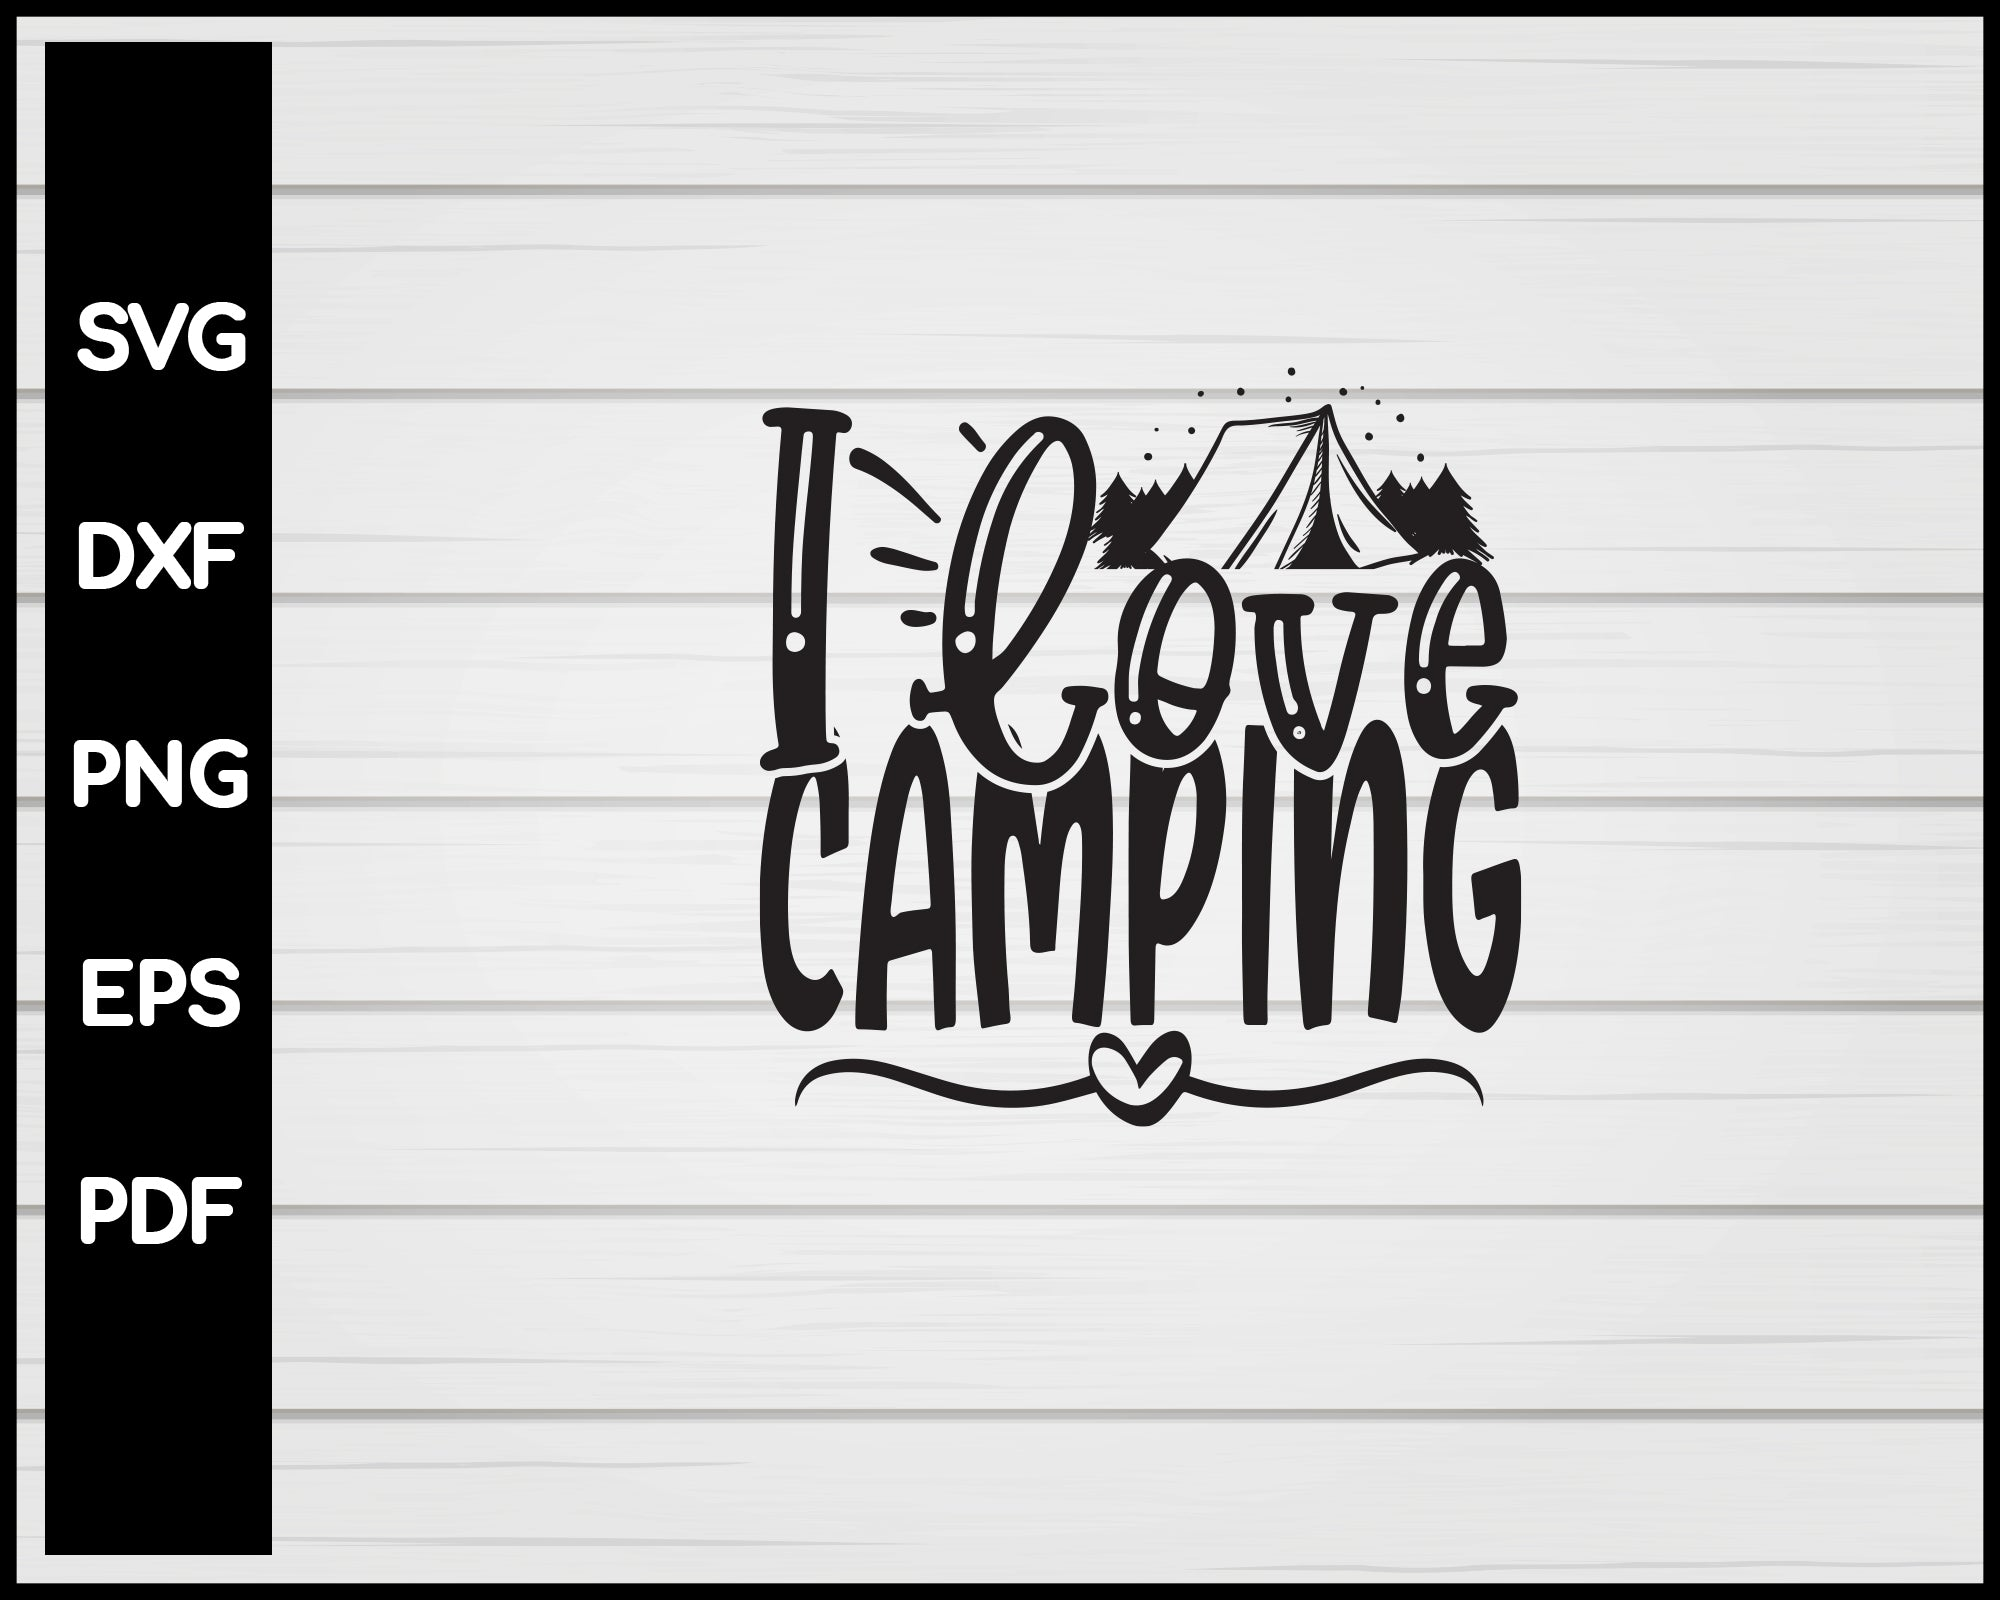 I Love Camping svg Cut File For Cricut Silhouette eps png dxf Printable Files